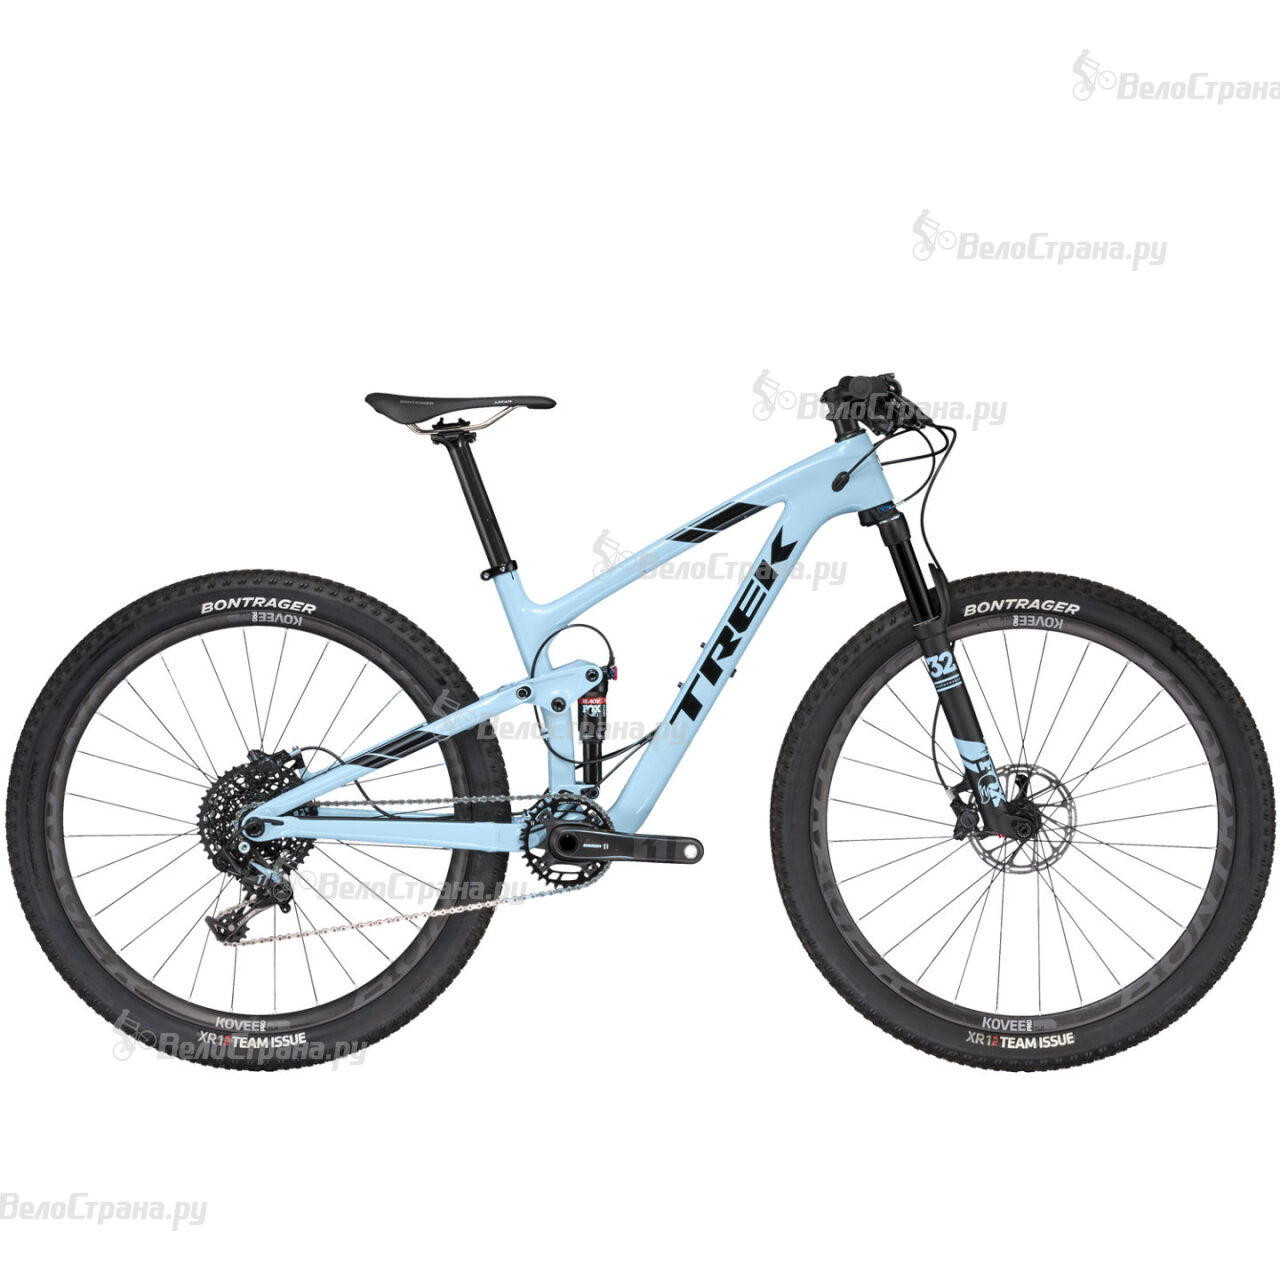 Велосипед Trek Top Fuel 9.8 SL W (2017) inverter cimr vb4a0031faa v1000 series 11kw small new